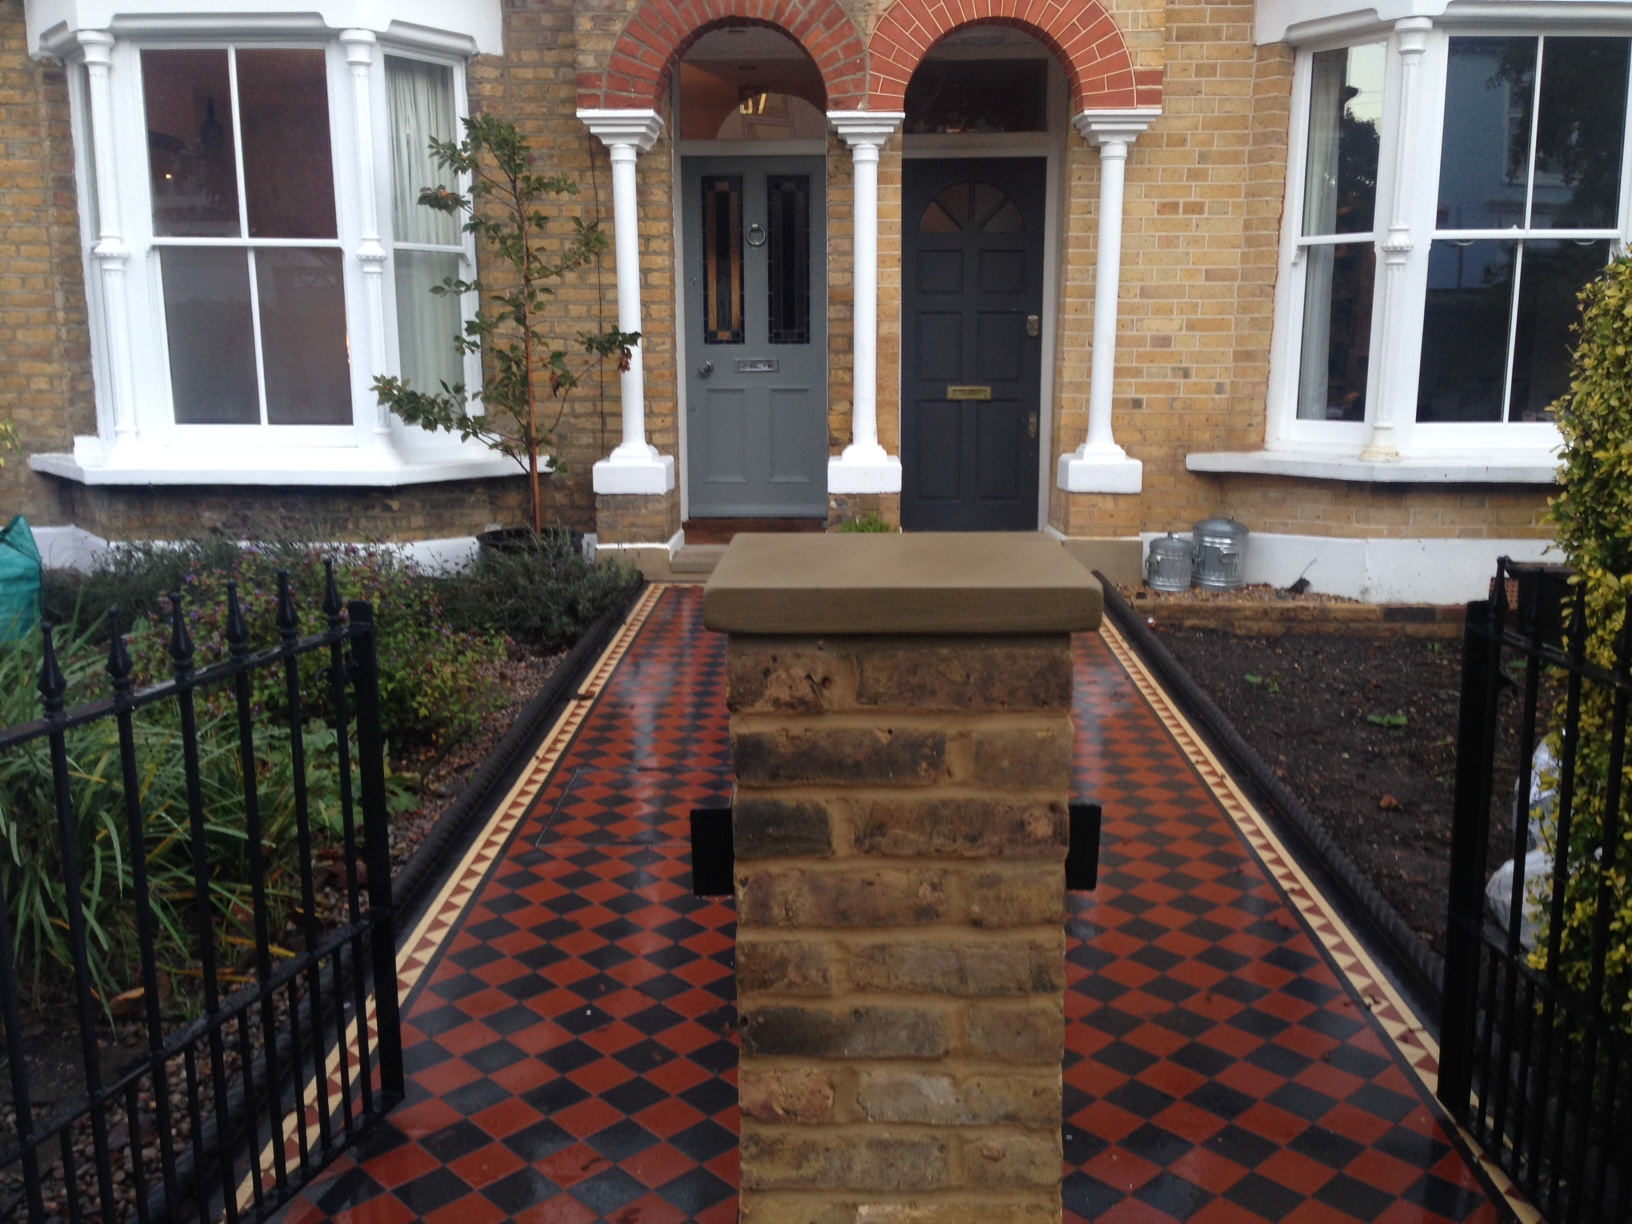 Brixton Herne Hill Victorian Mosaic Tile Path black and red tile with Yorkstone pier cap entrance stone and imperial yellow brick london stock wall (9)